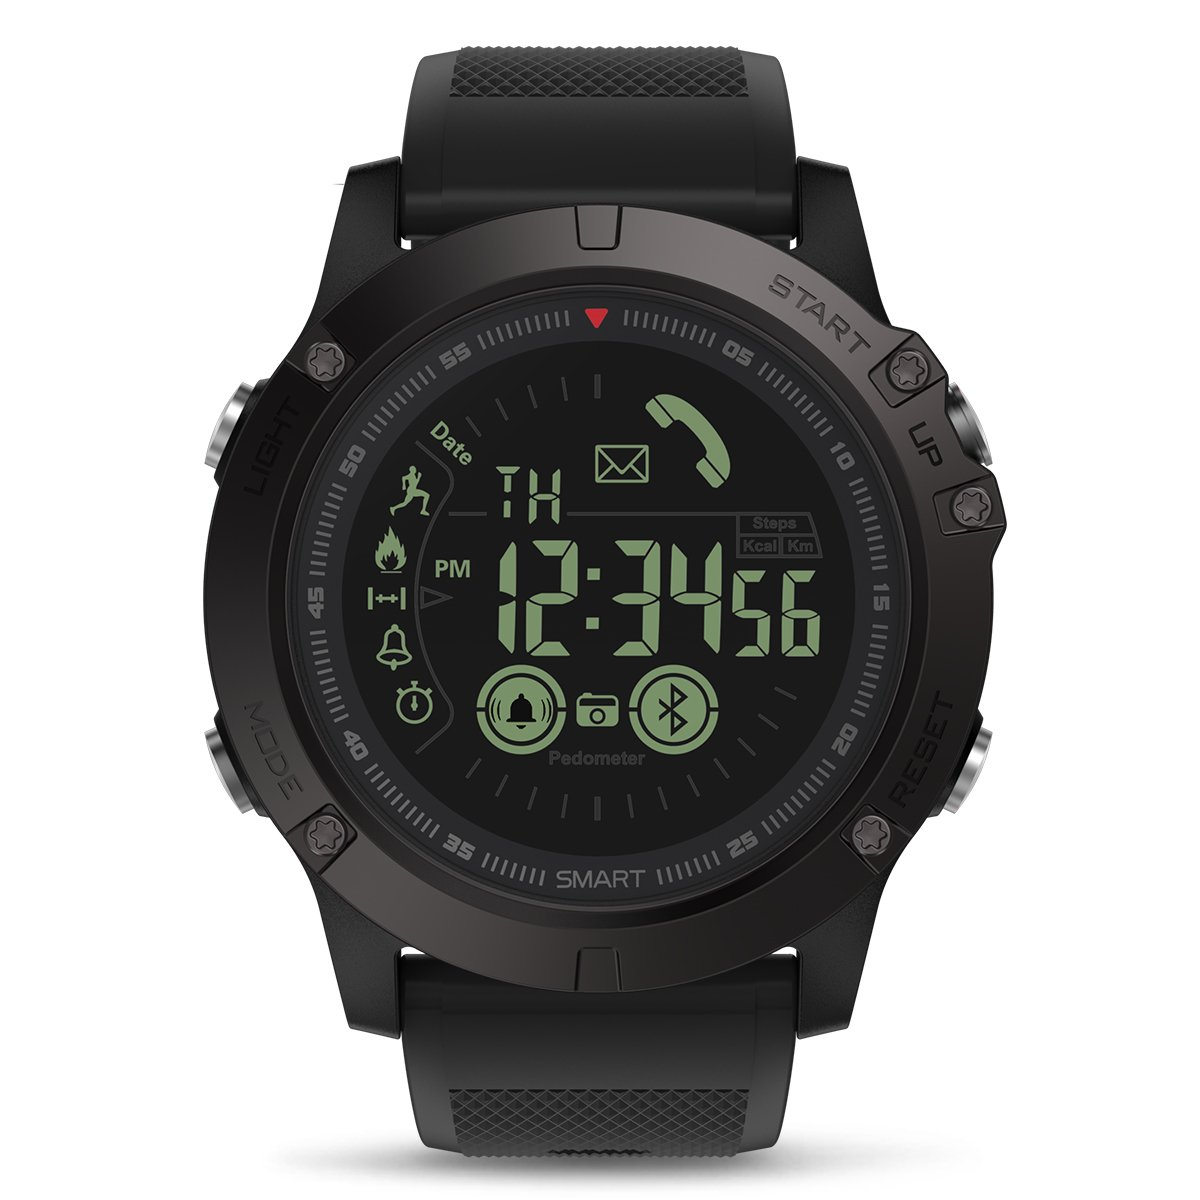 Smart Sports Watch, GOKOO Digital Outdoor Sports Smartwatch for Men with Pedometer, Calorie Counter, Distance, Stopwatch, Clock Alarm, Notifications for Android and iOS Phones - Black